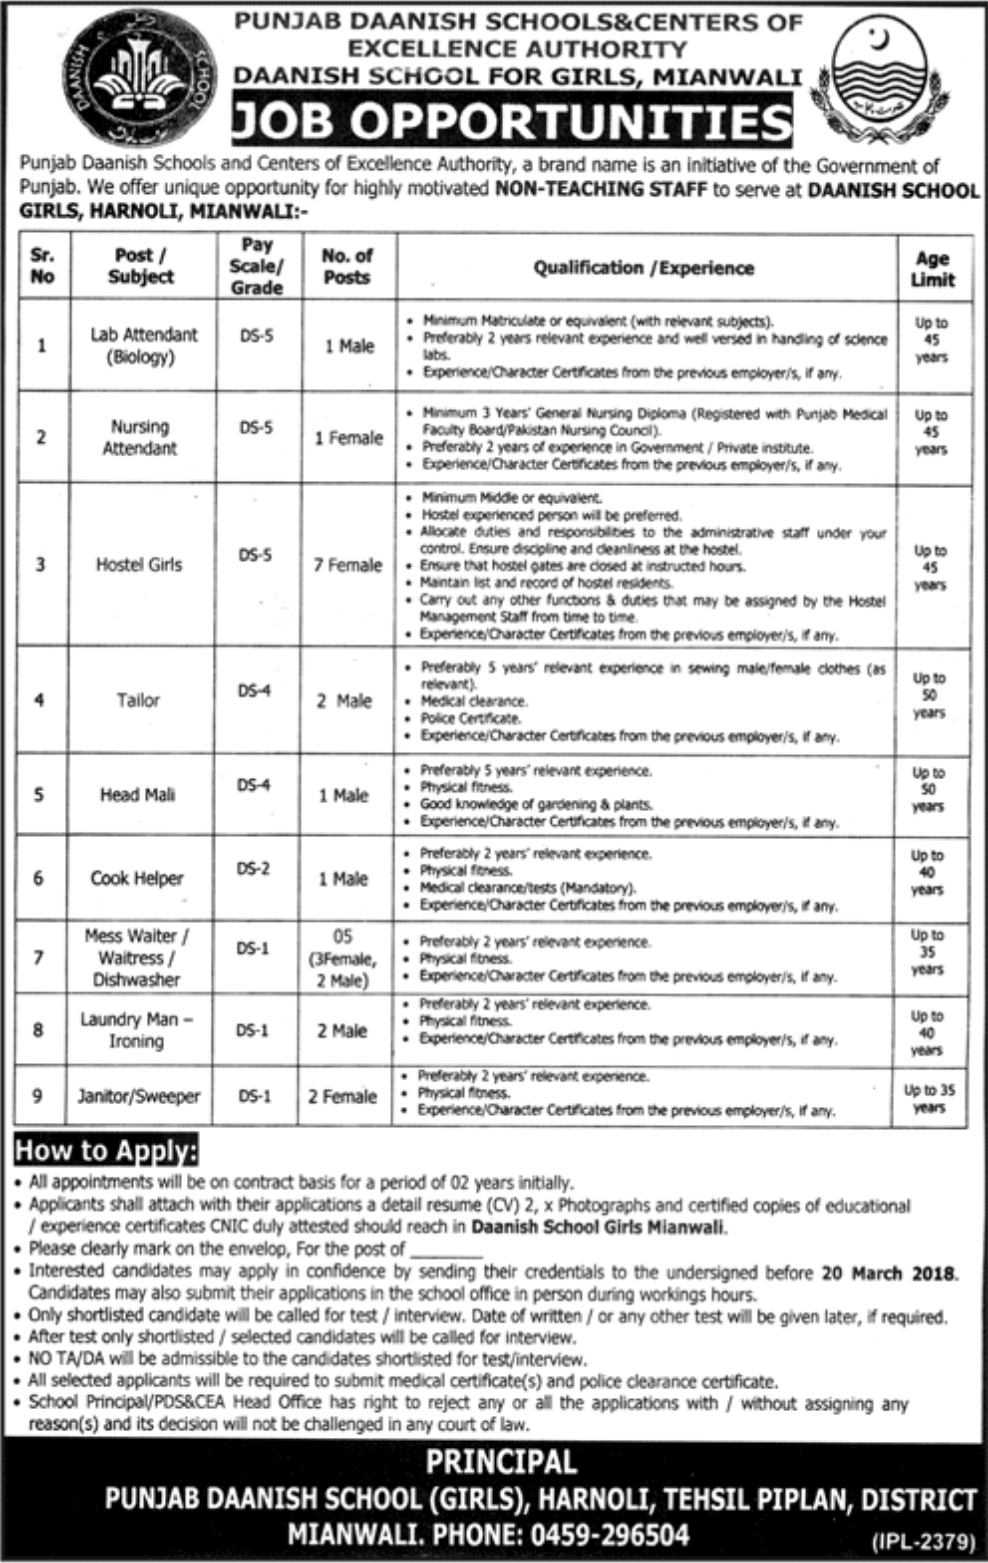 Jobs In Punjab Daanish School And Centers Of Excellence Authority Mianwali 2018 for 22 Vacancies